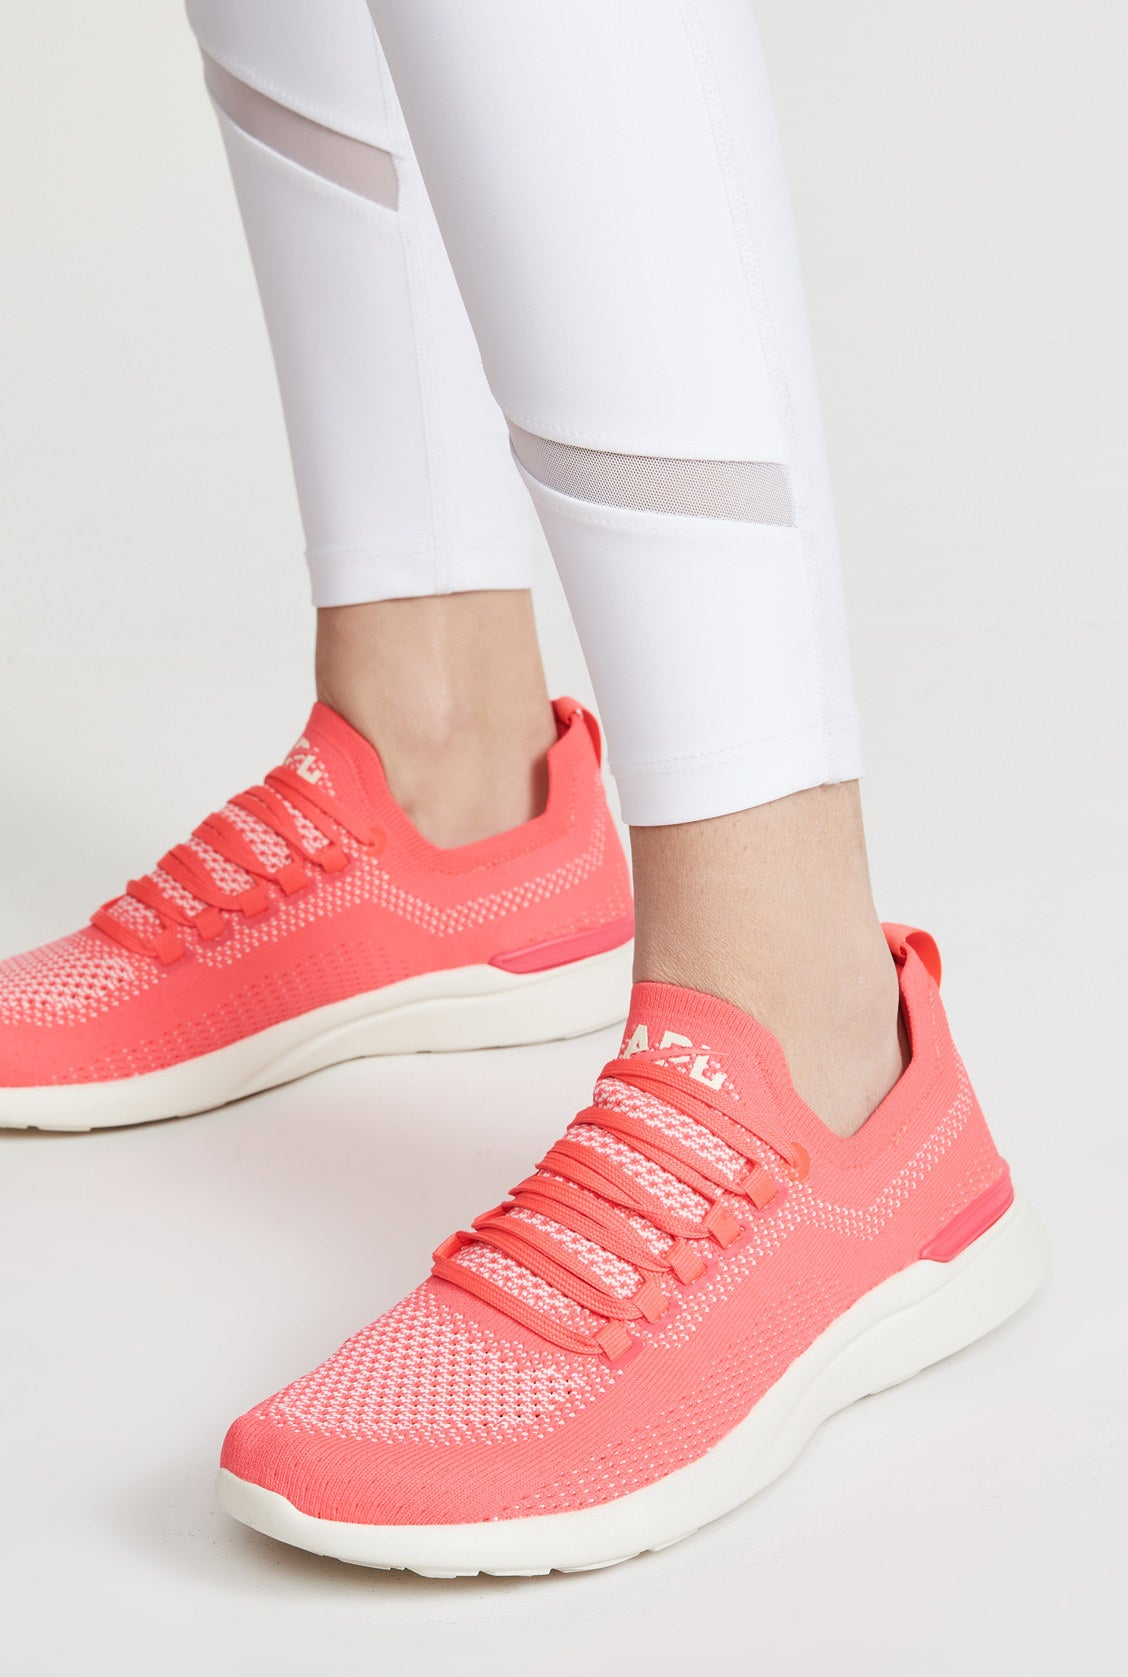 The sneakers with a bright pink and white knit body and white sole